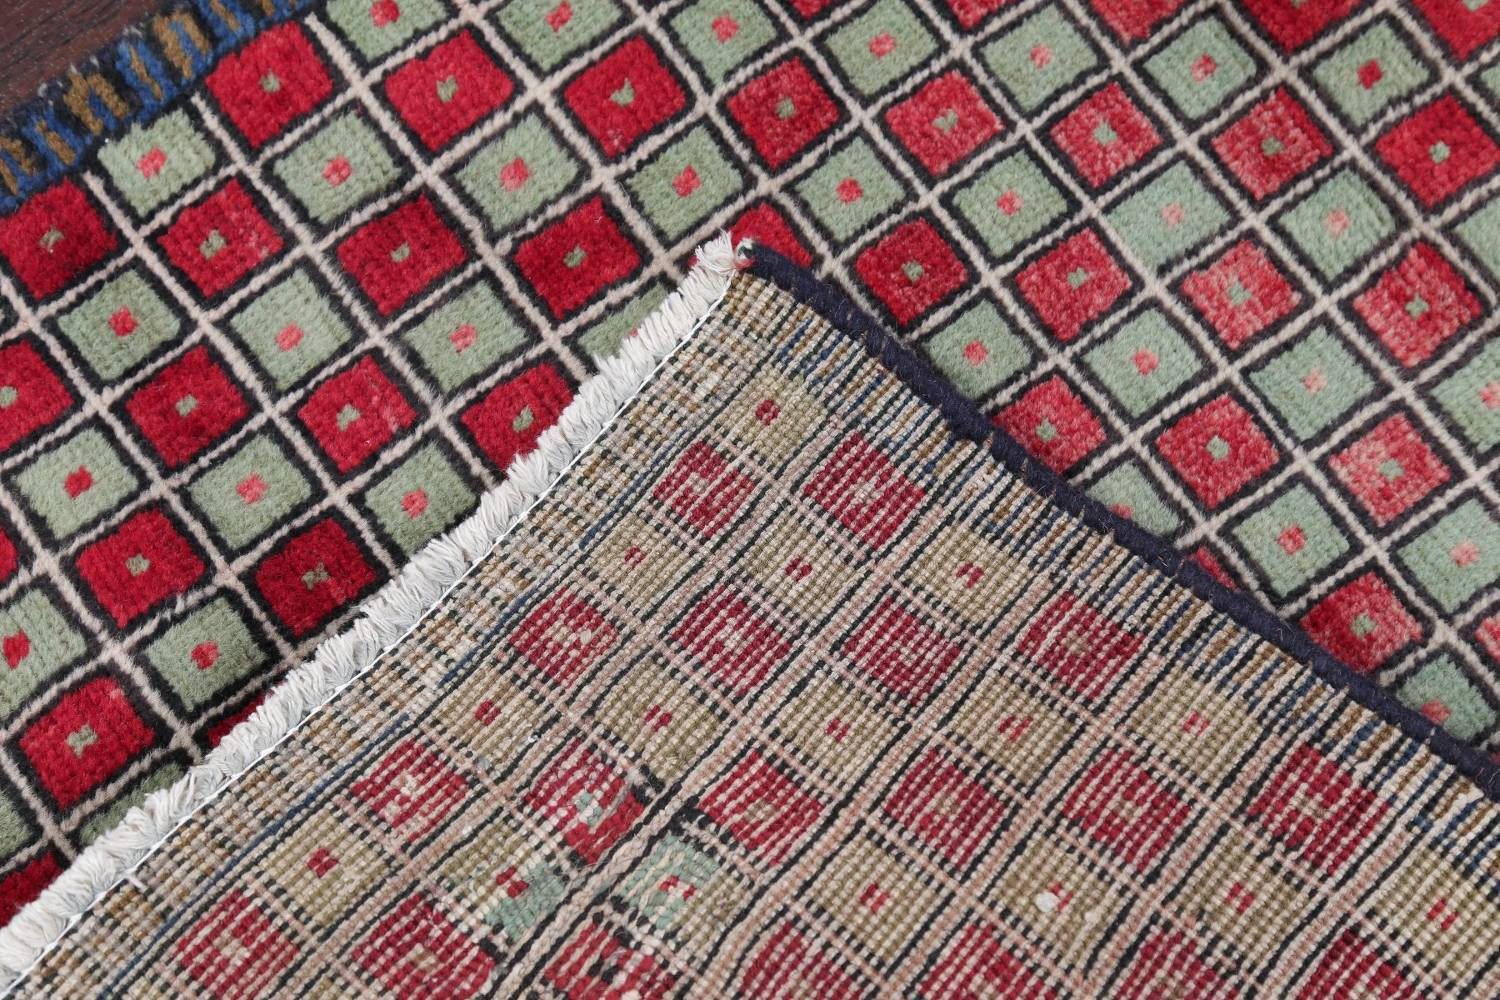 Checked Geometric Gabbeh Persian Hand-Knotted 2x4 Wool Rug image 5